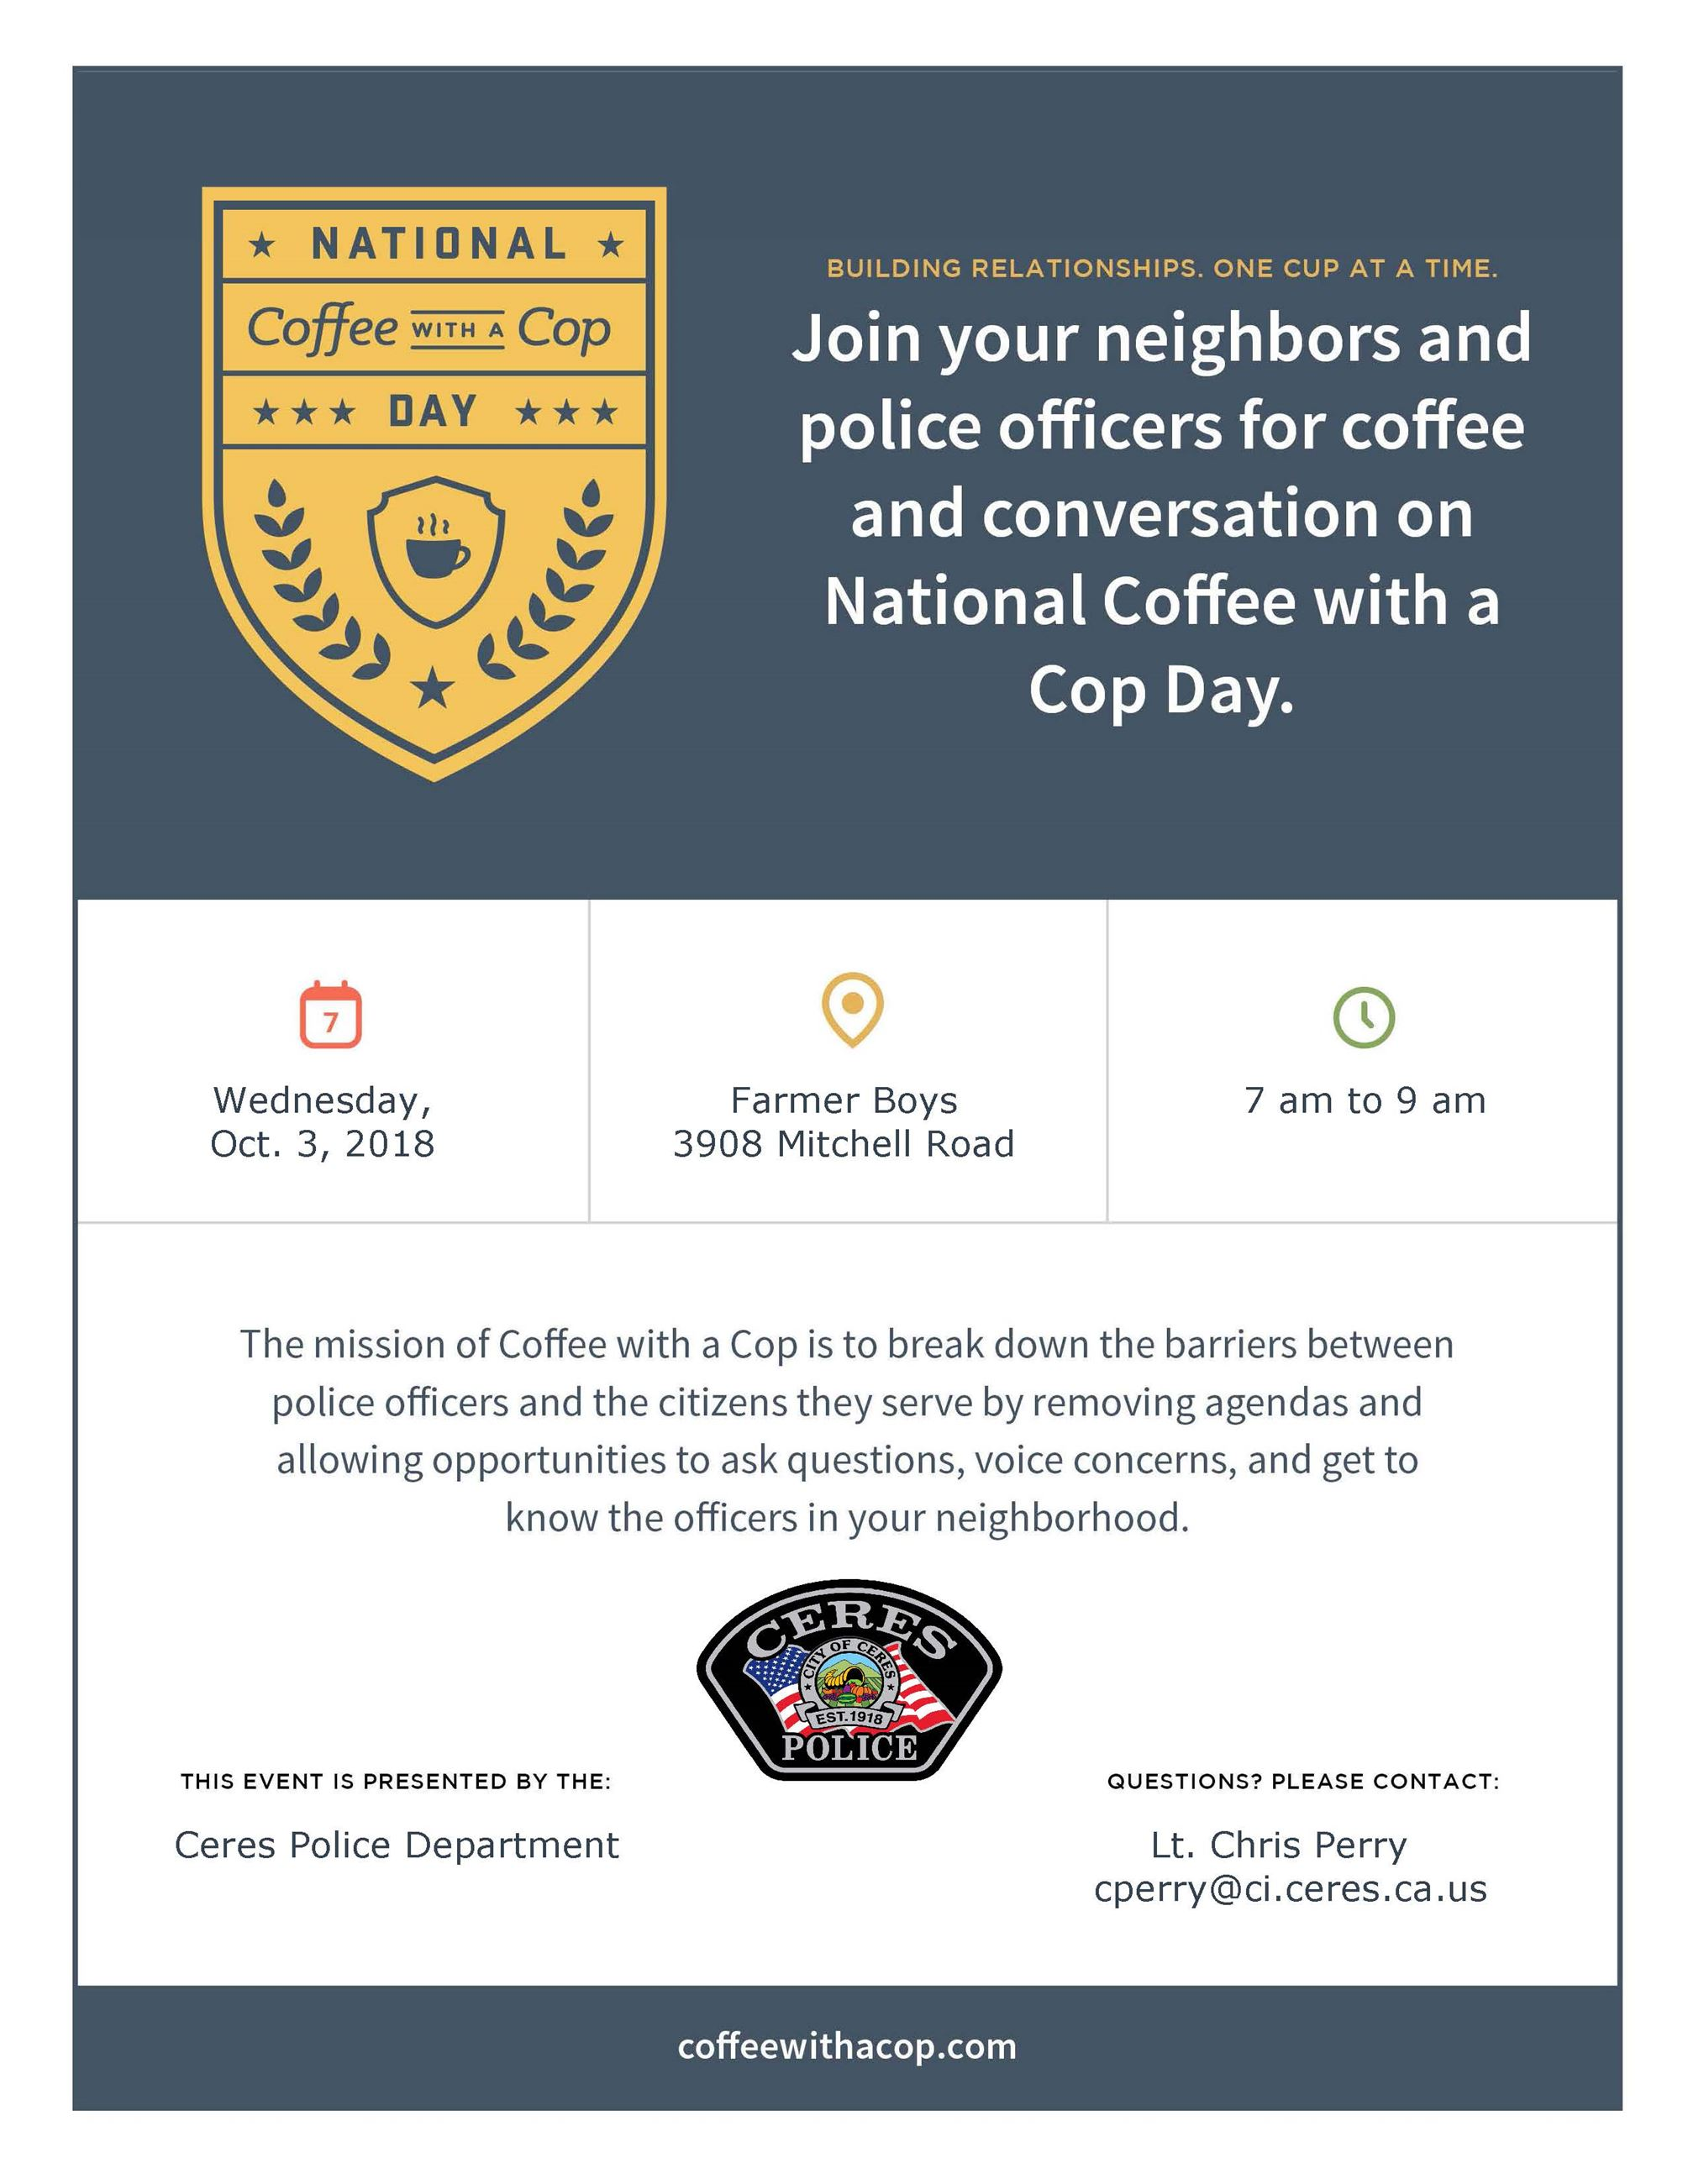 10-3-18 Coffee with a Cop Event